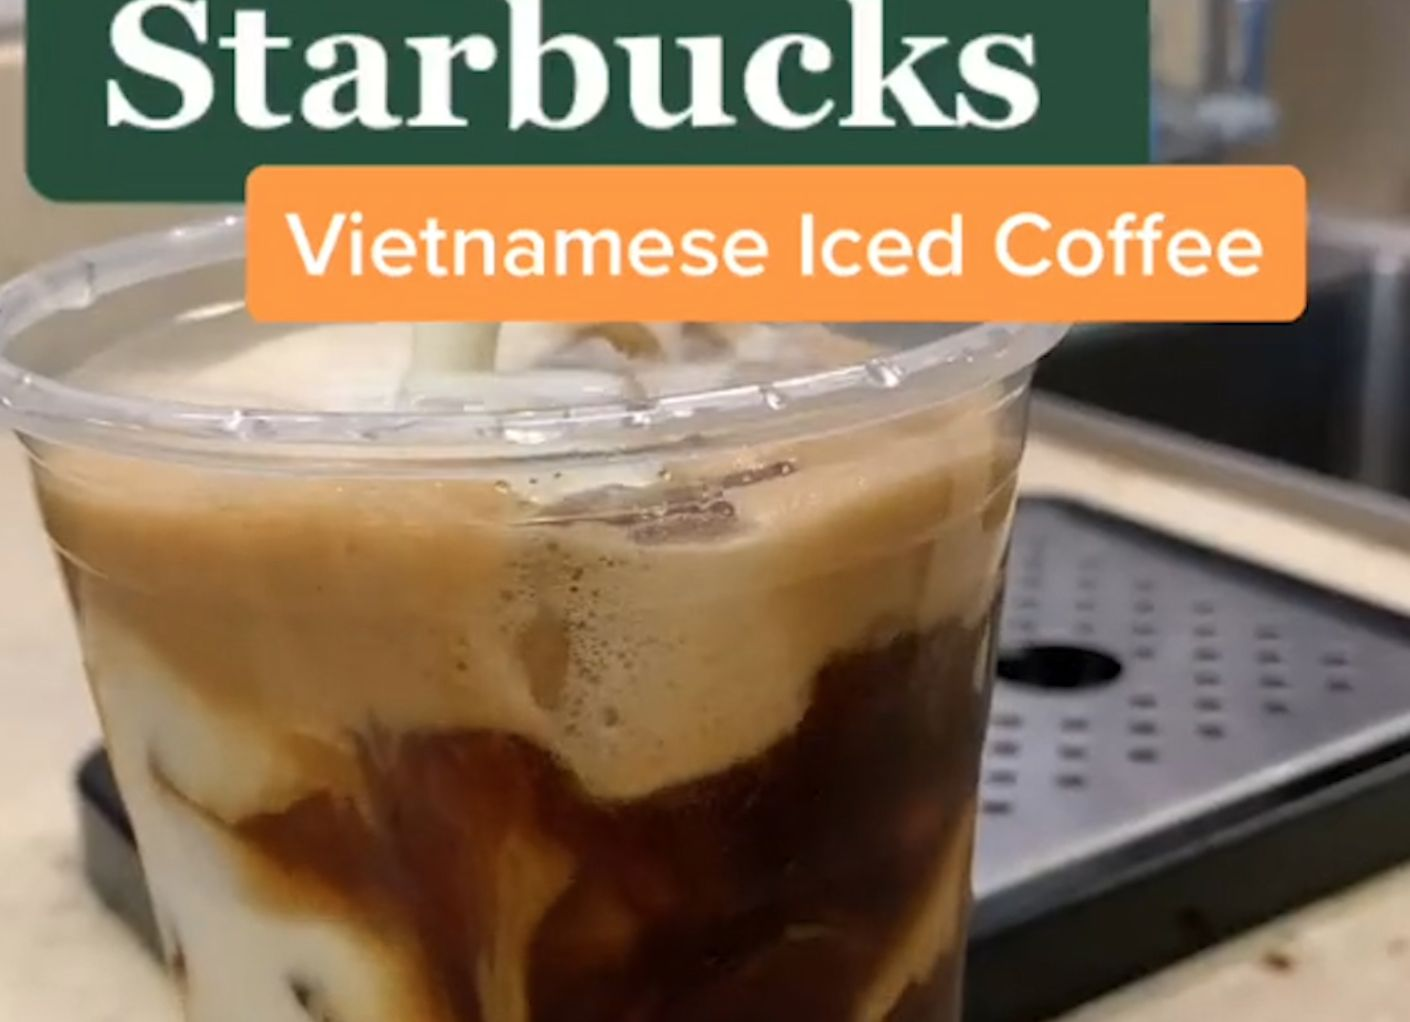 Barista Reveals Exactly How To Order Vietnamese Iced Coffee At Starbucks